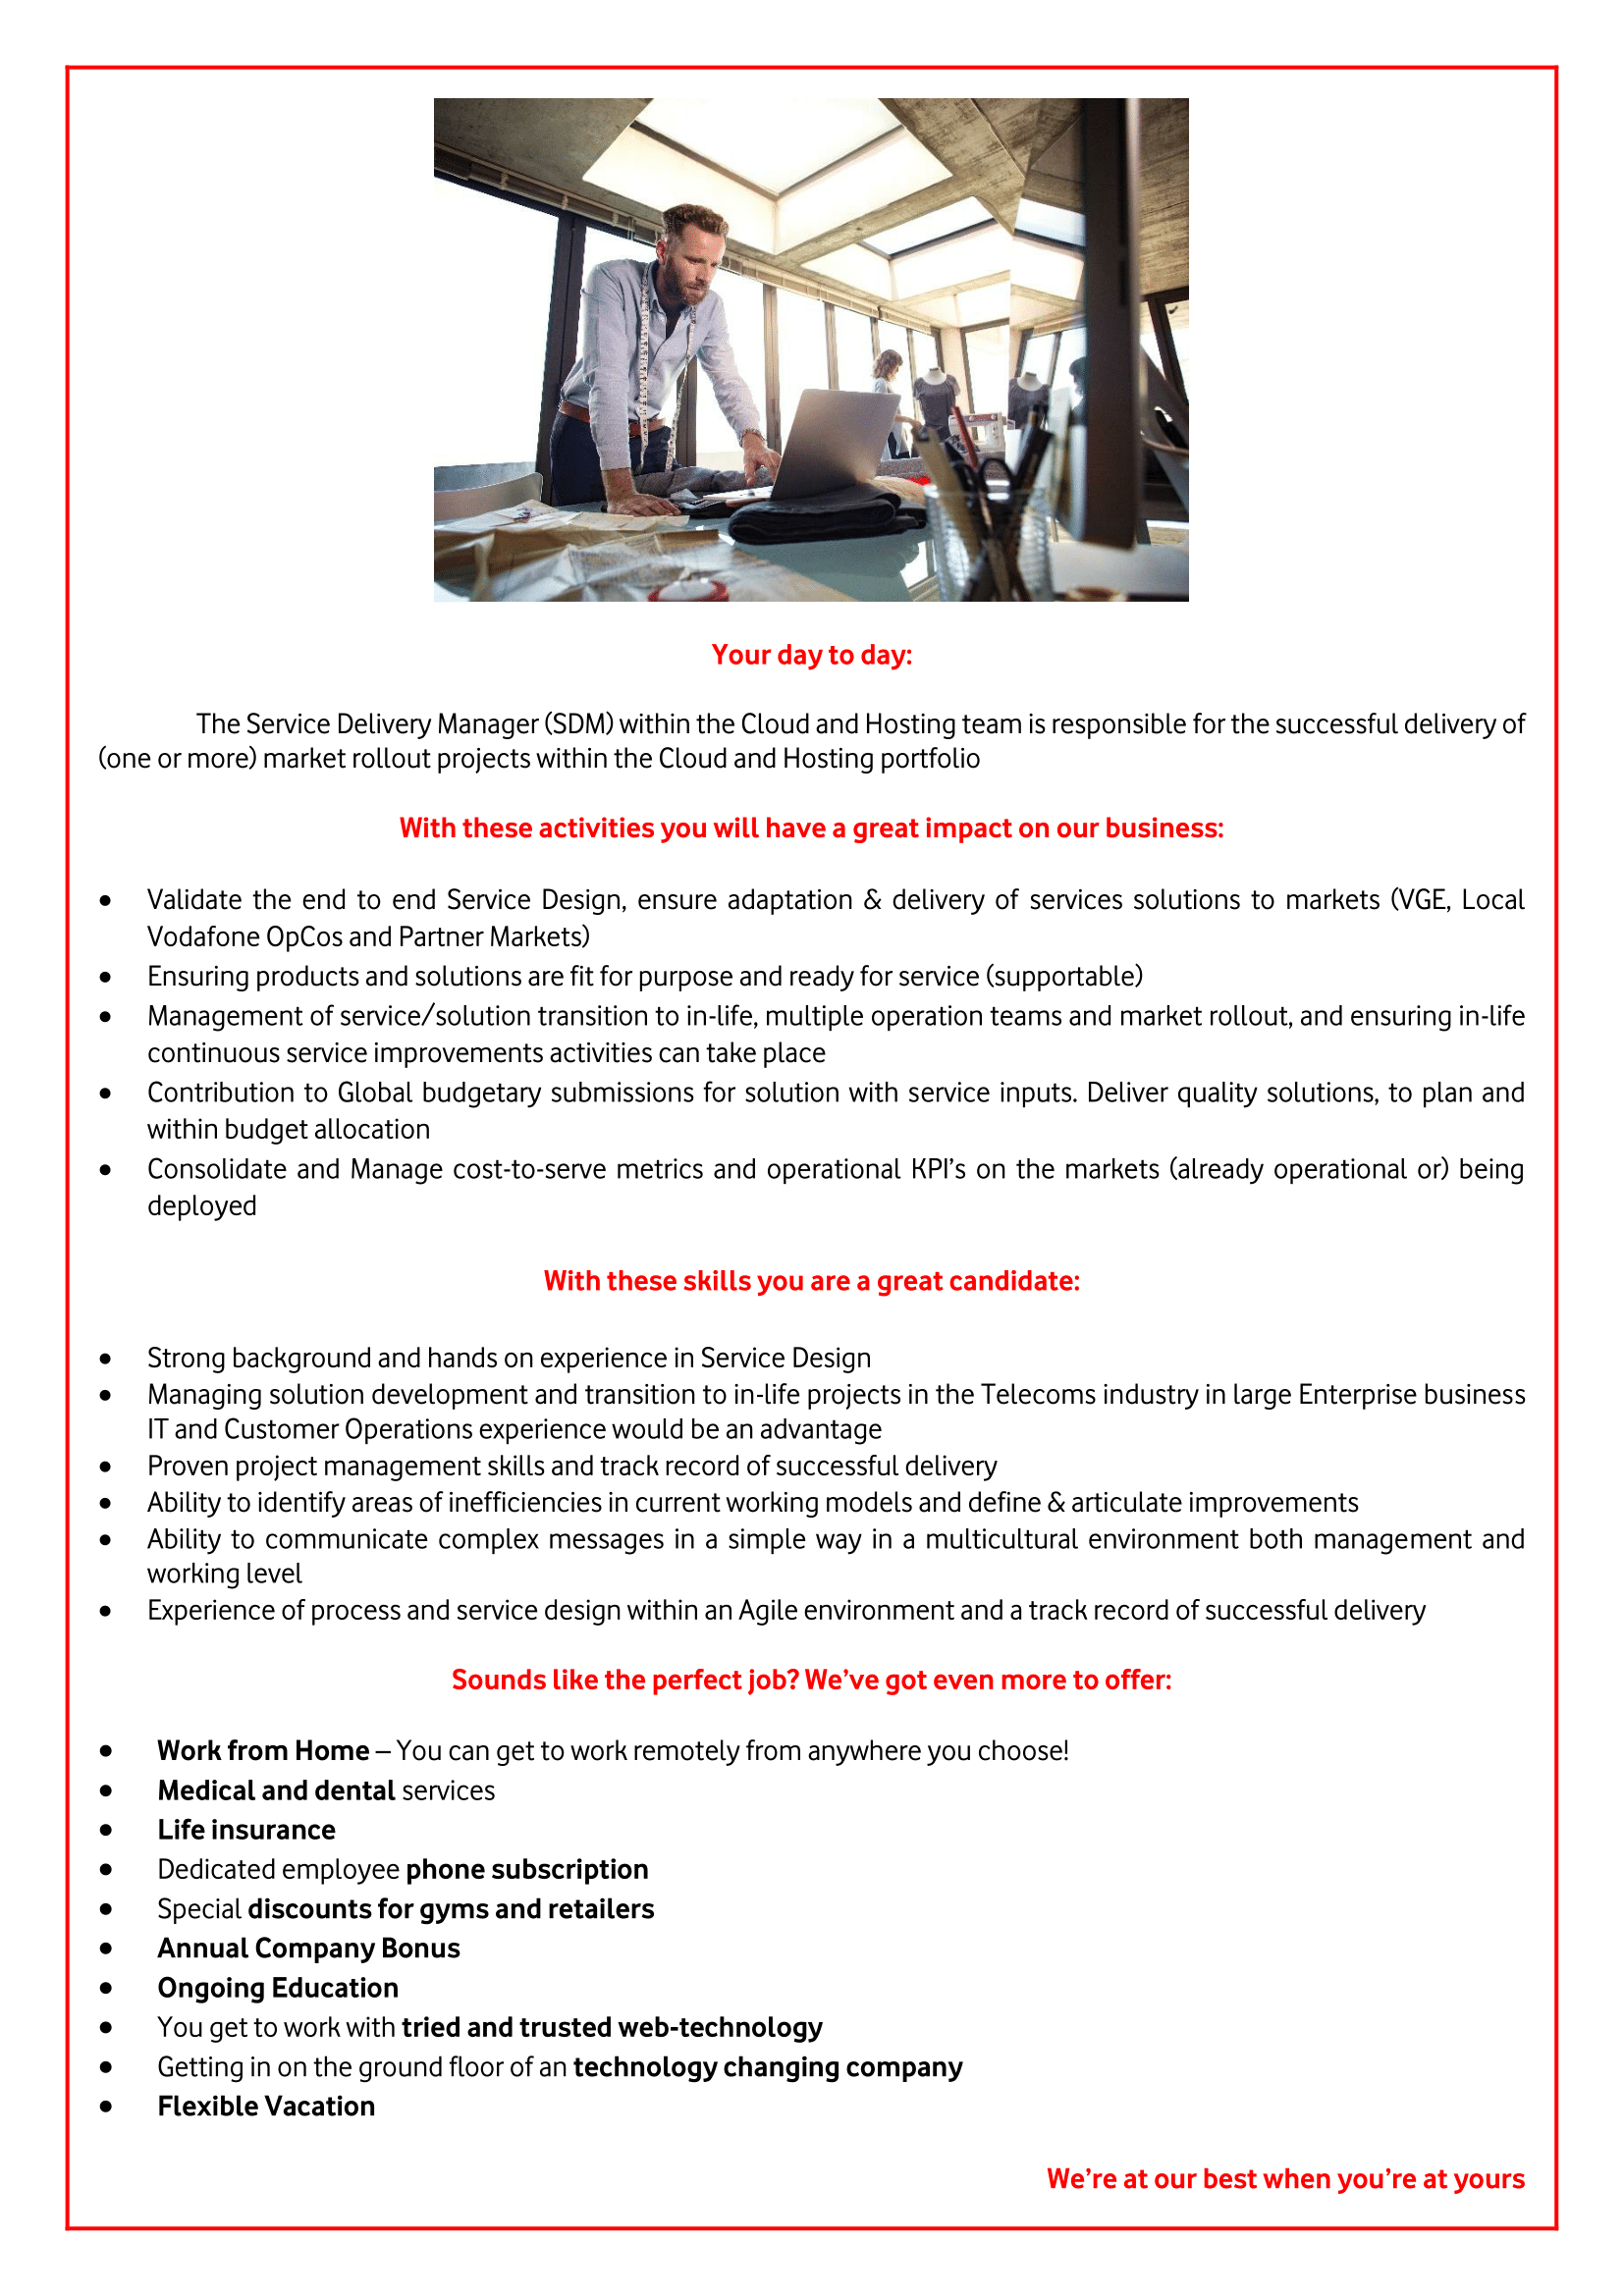 Service Delivery Manager, C&H-1